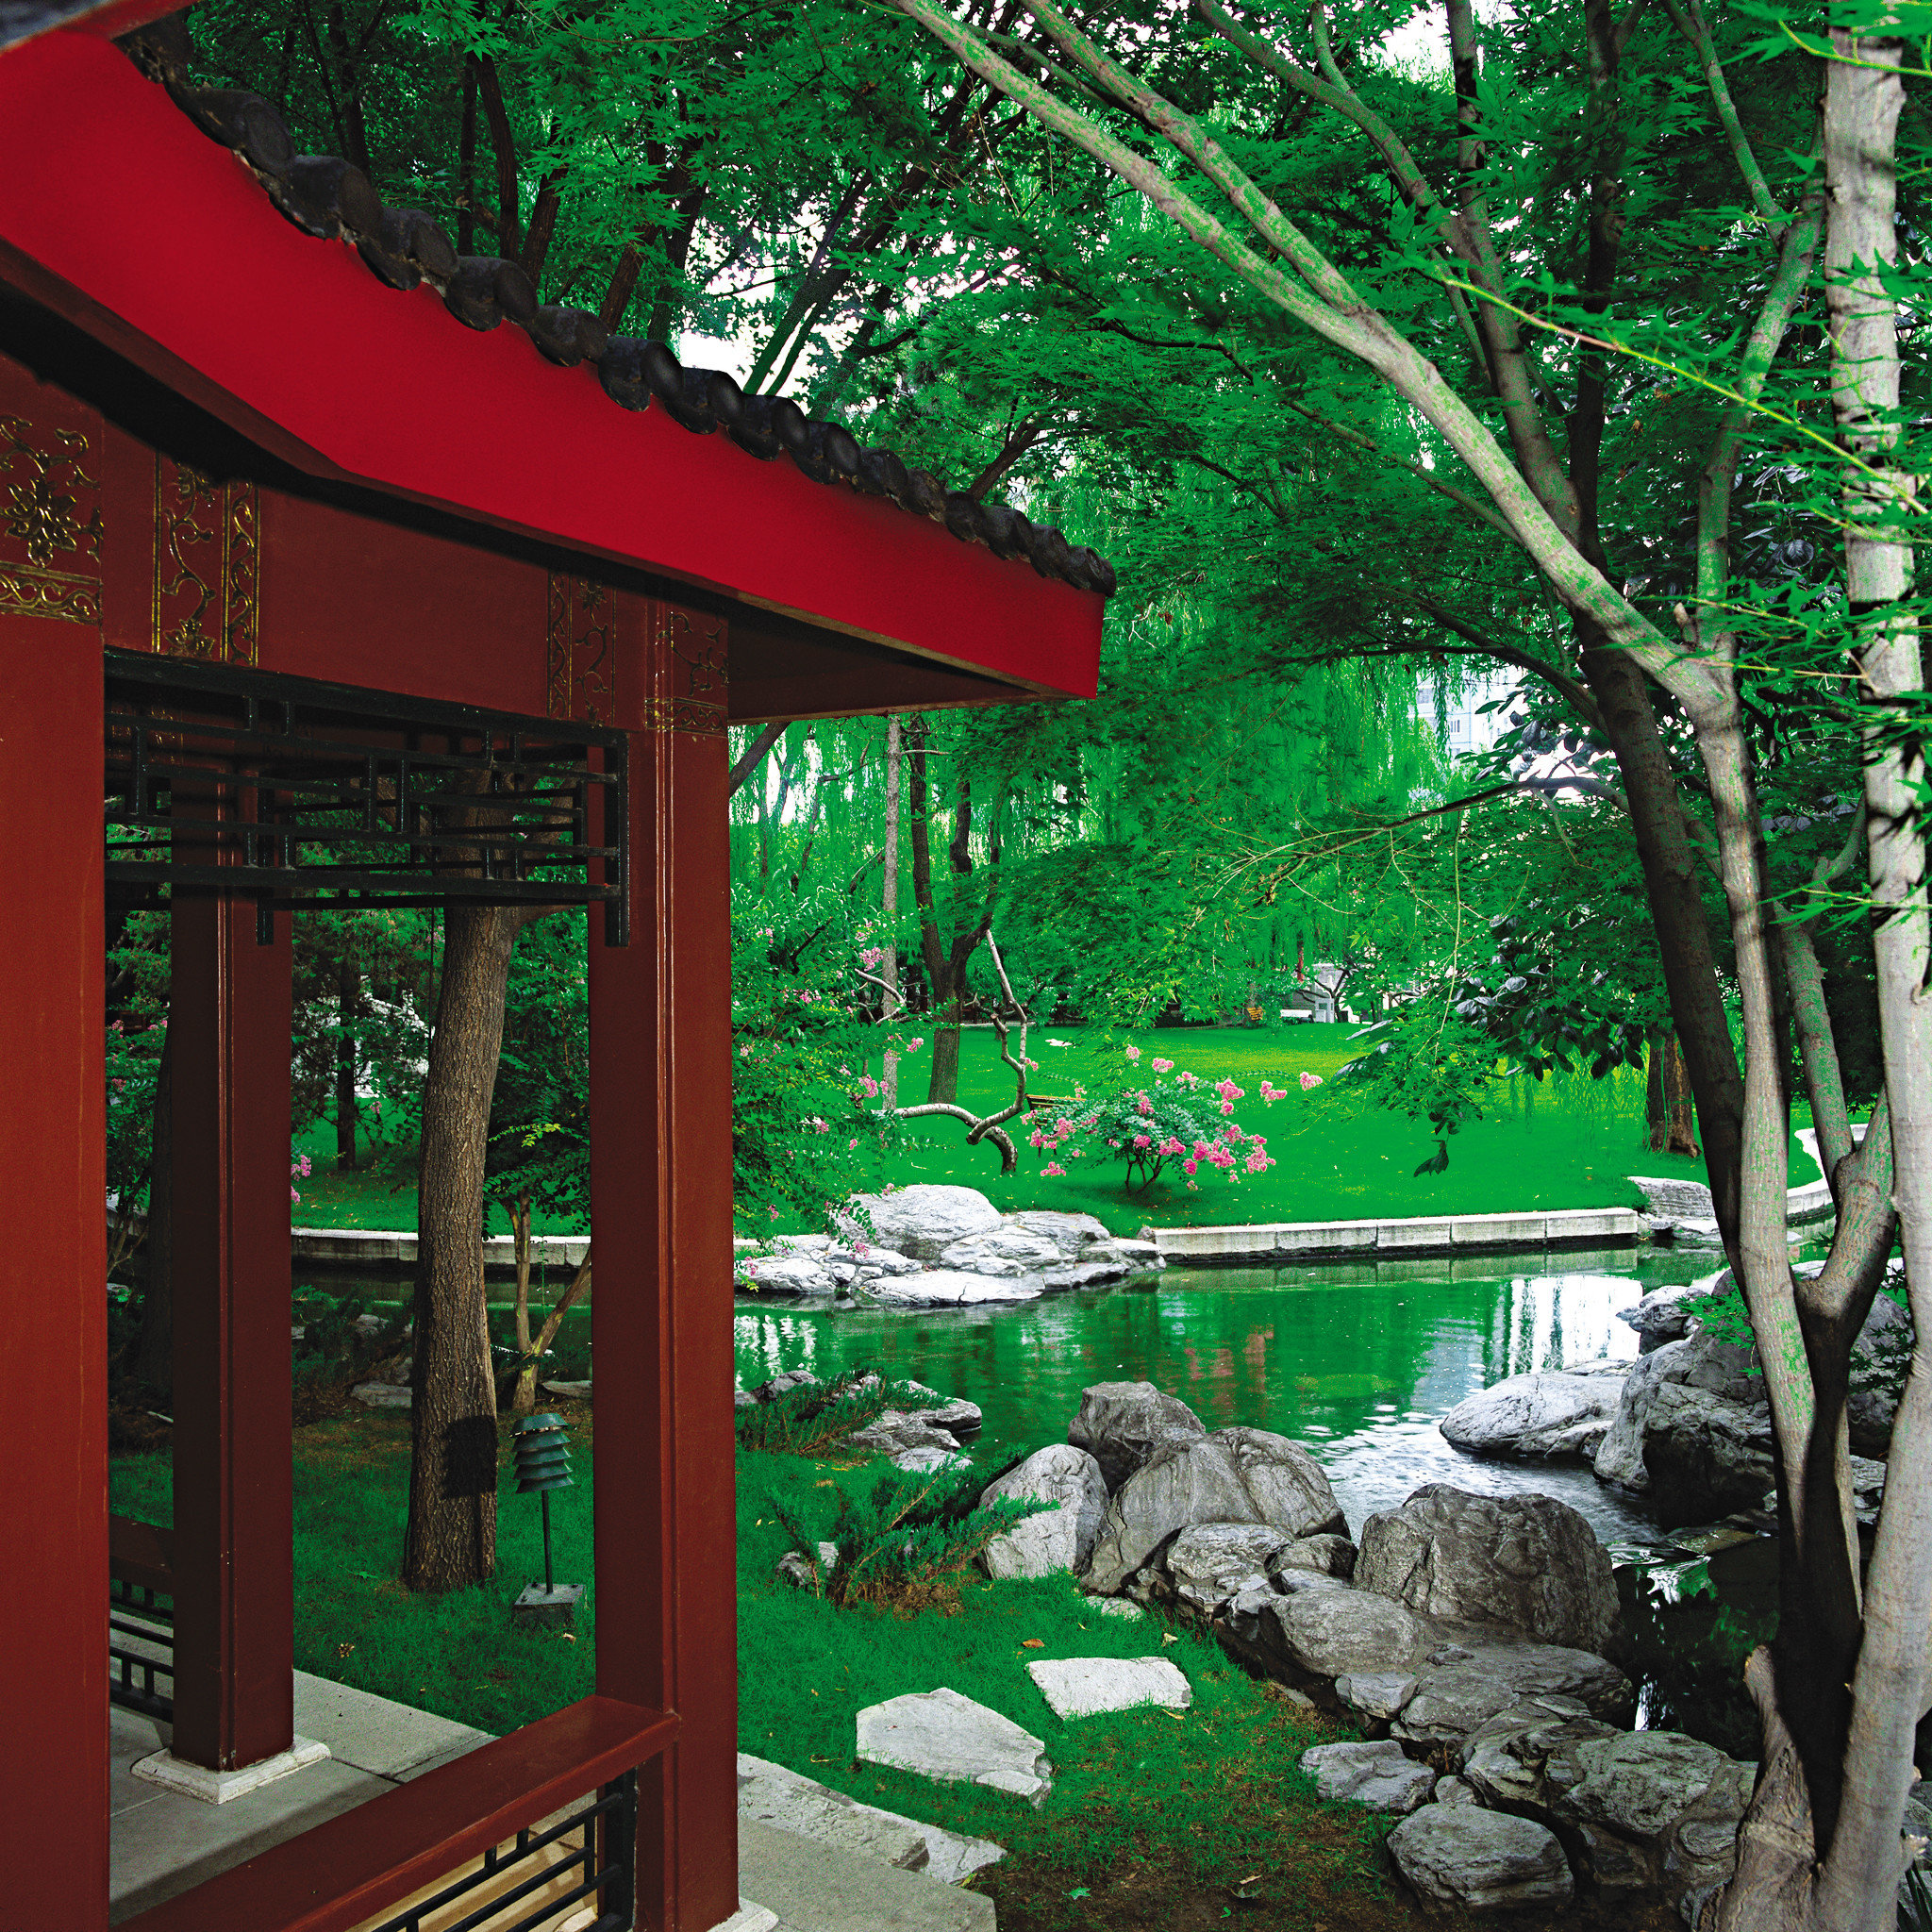 Garden Grounds Nature tree green red botany house shinto shrine backyard shrine outdoor structure yard flower Jungle porch lush